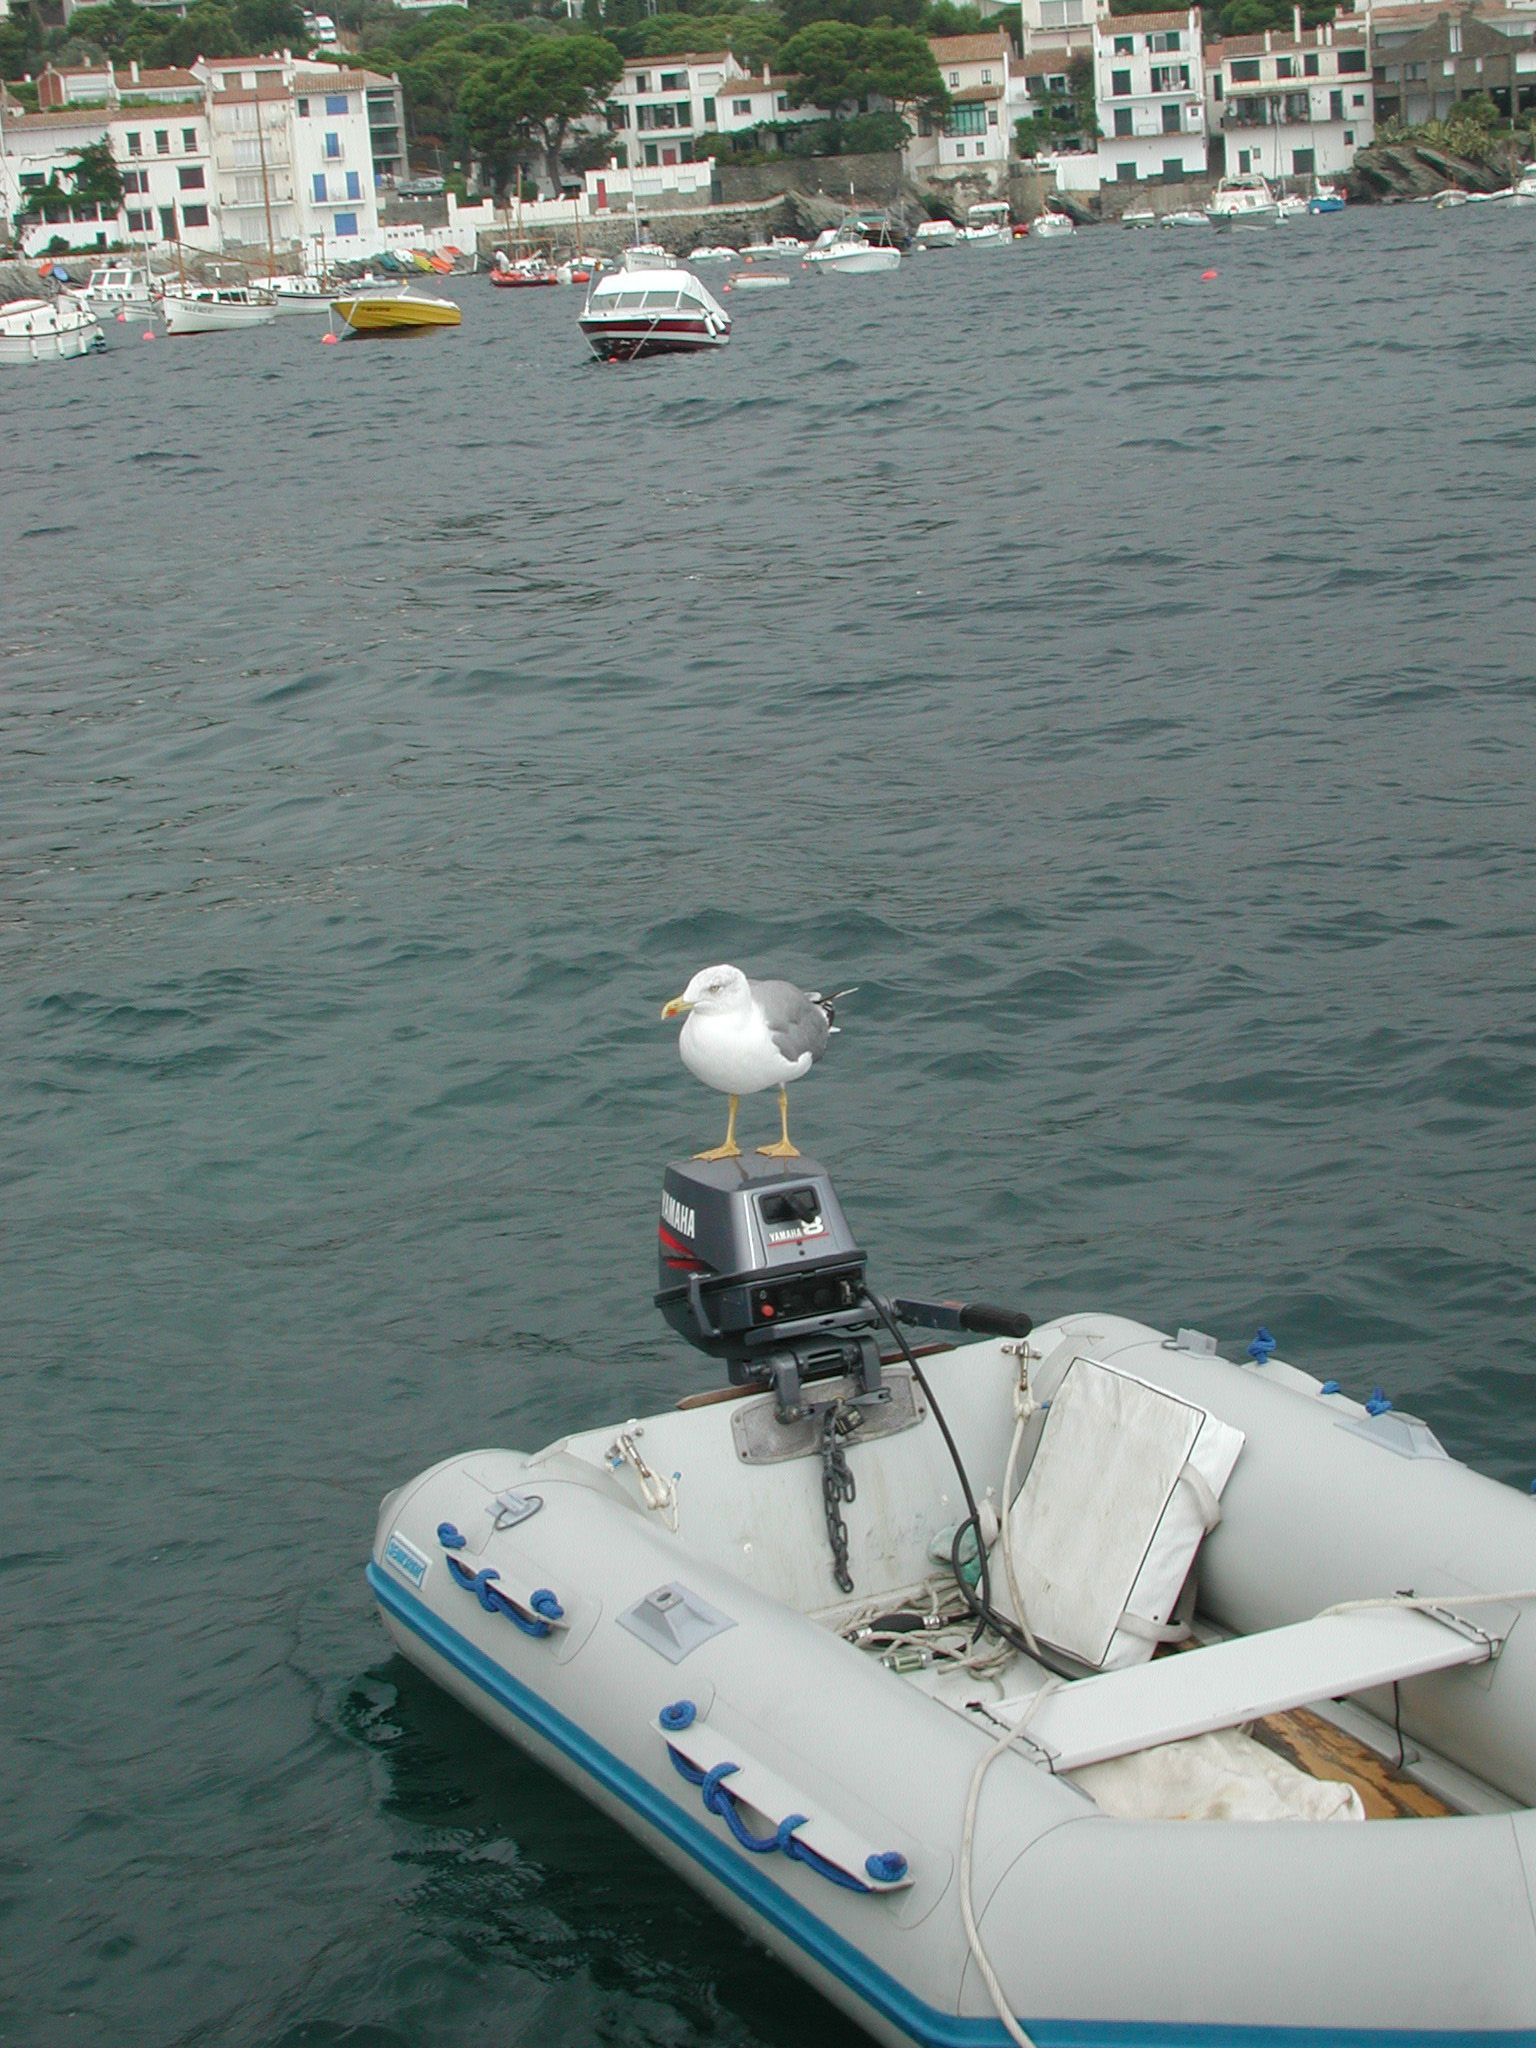 Egret's  inflatable dinghy during the Med years. Yes, this one too went under. We backed over it while re-anchoring after moving from a rolly anchorage to the protection of a land spit off the coast of Italy. Within an hour of recovering the engine it was running and ran for years after.